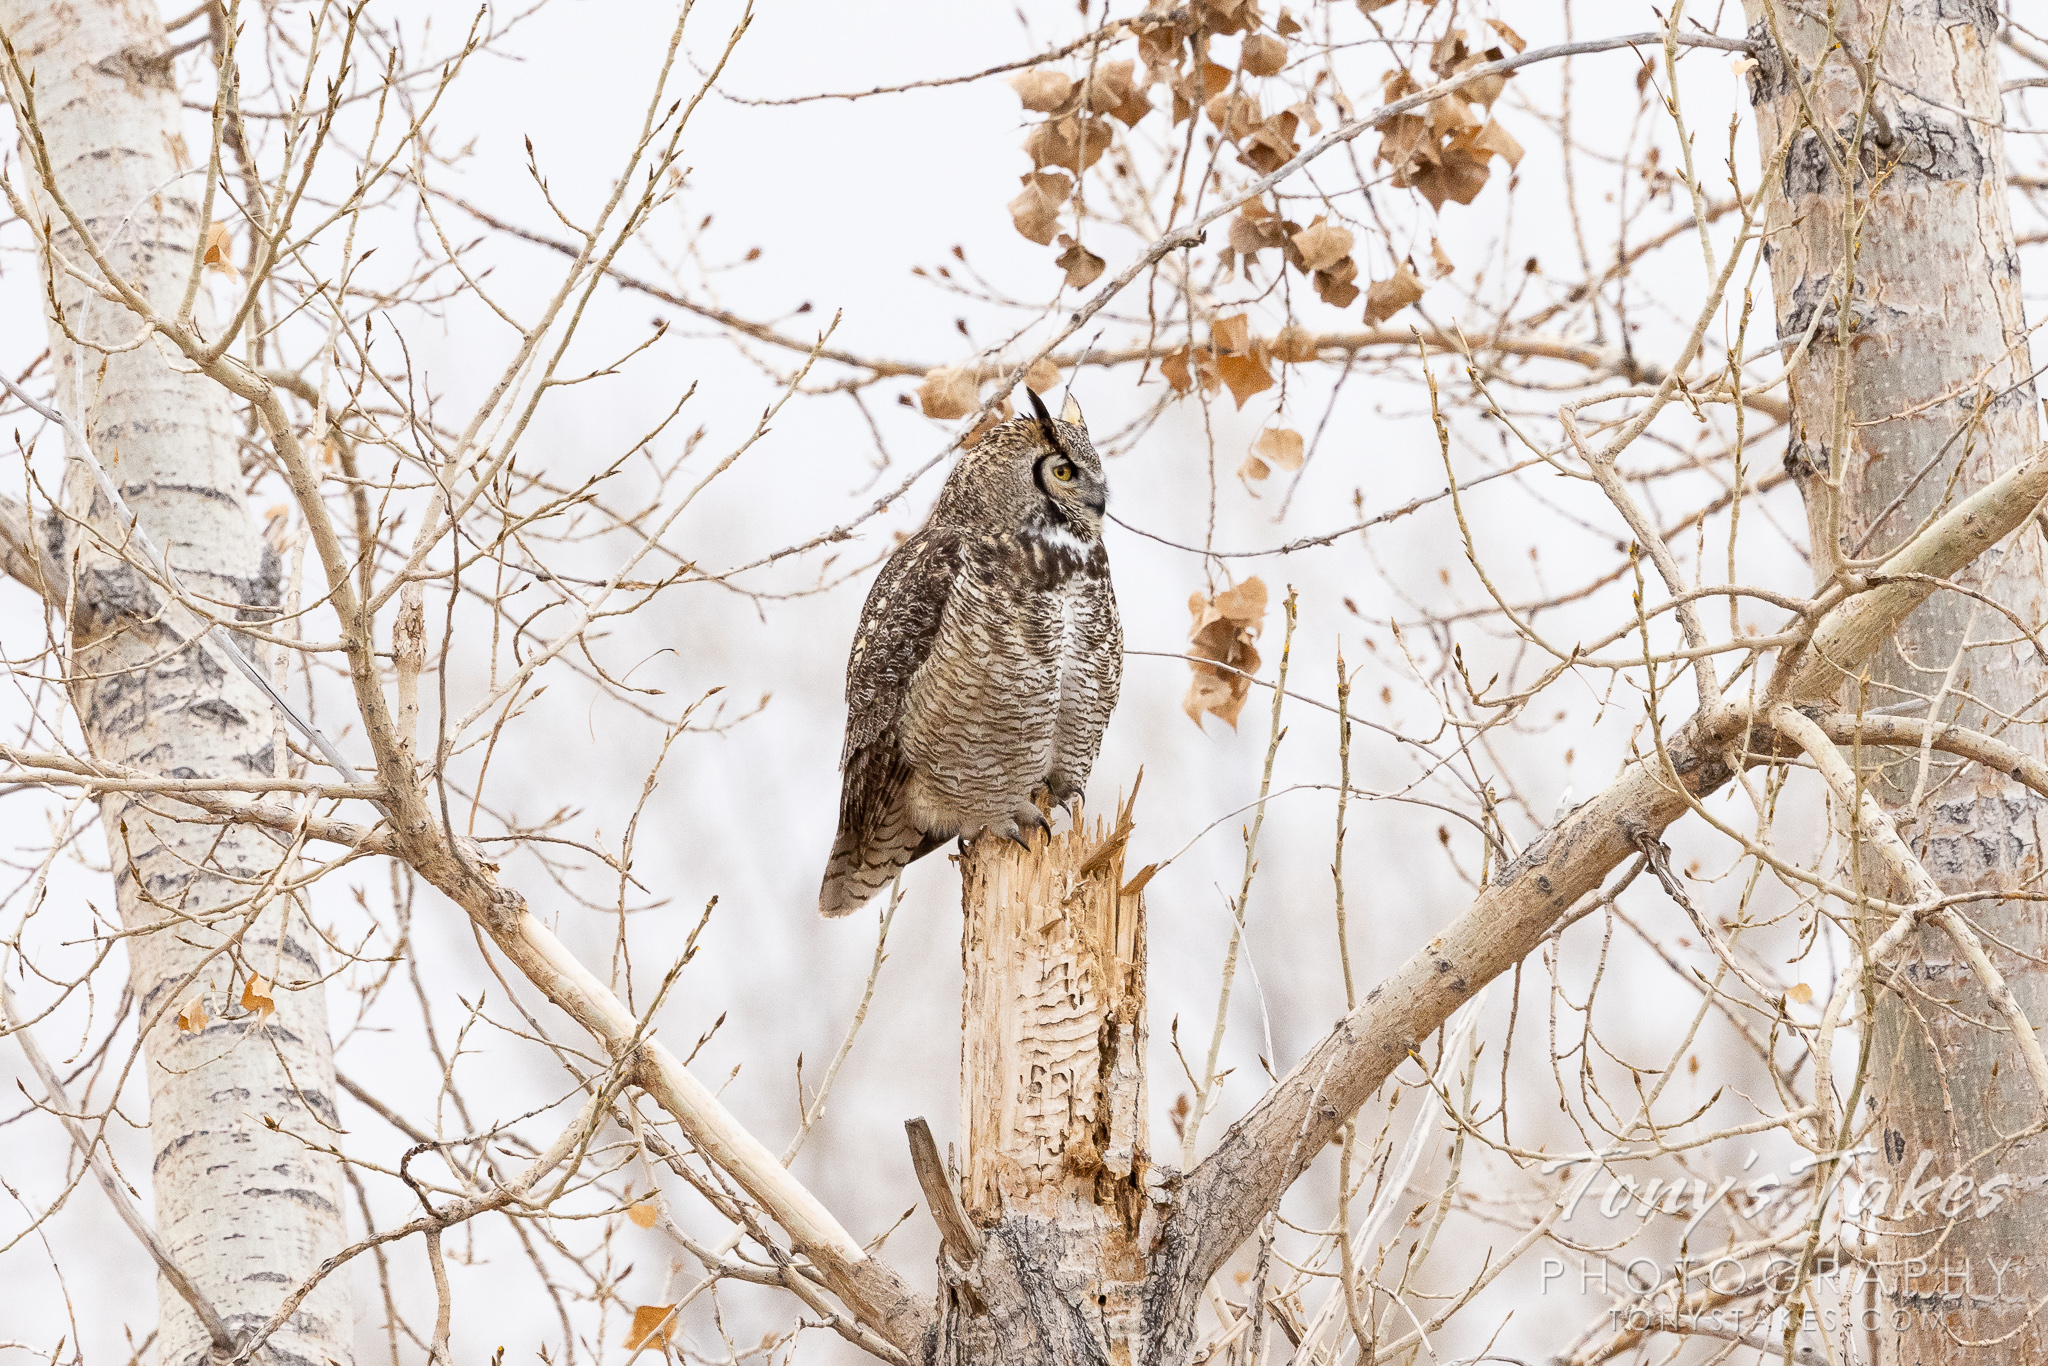 Great horned owl hangs out in the open